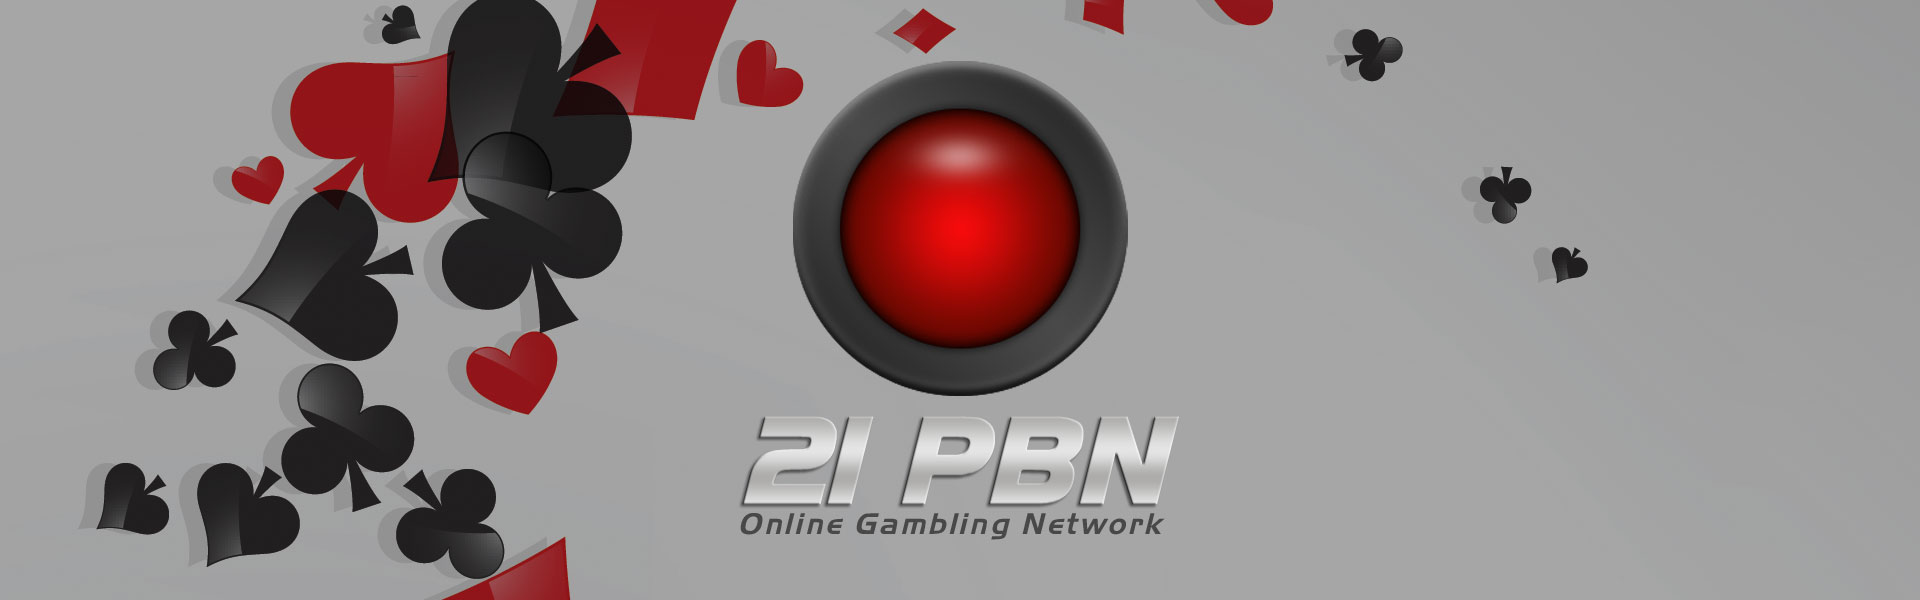 21PBN Gambling Network